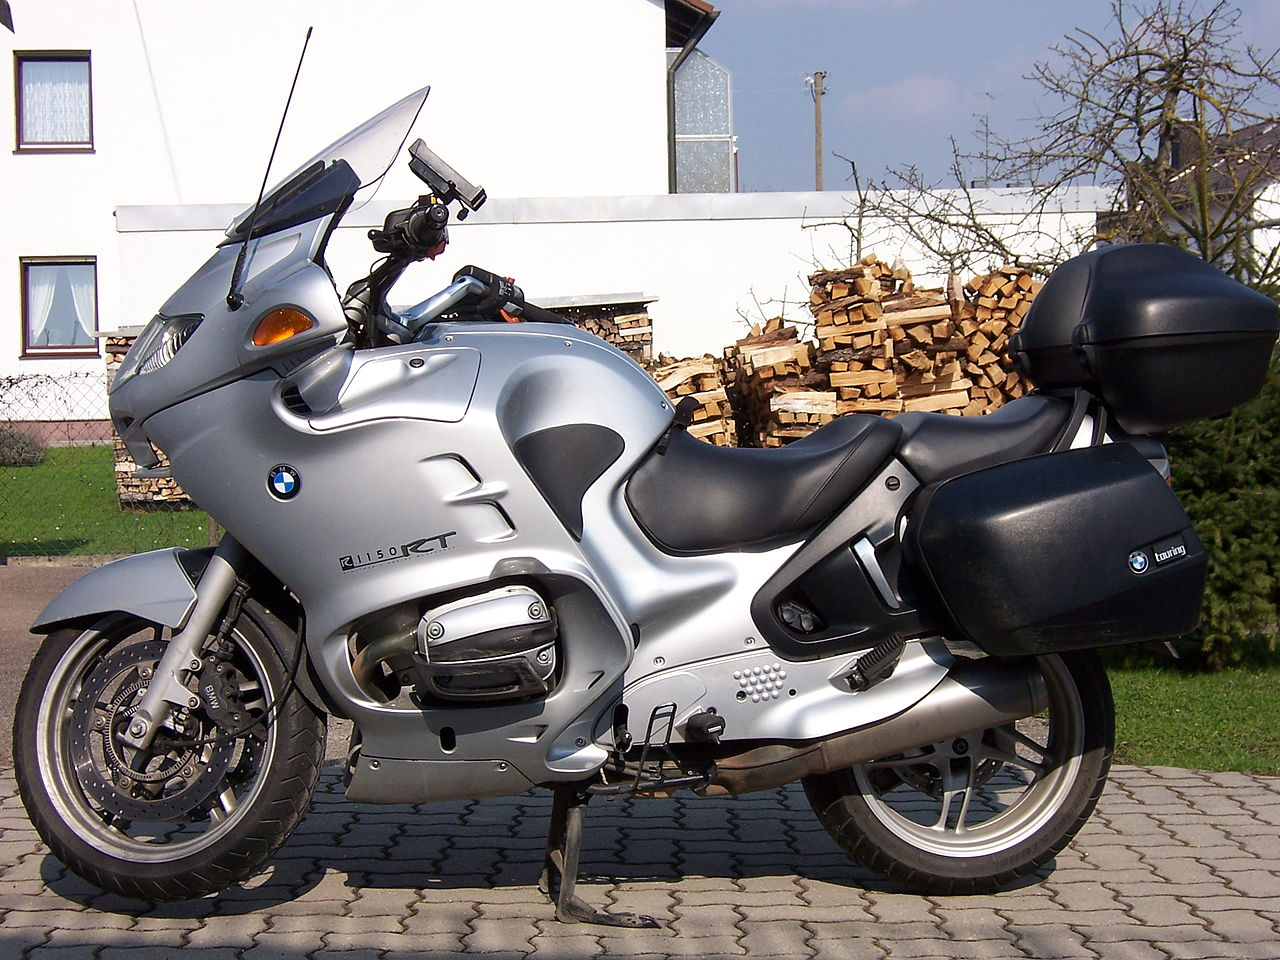 hight resolution of file bmw r1150rt jpg